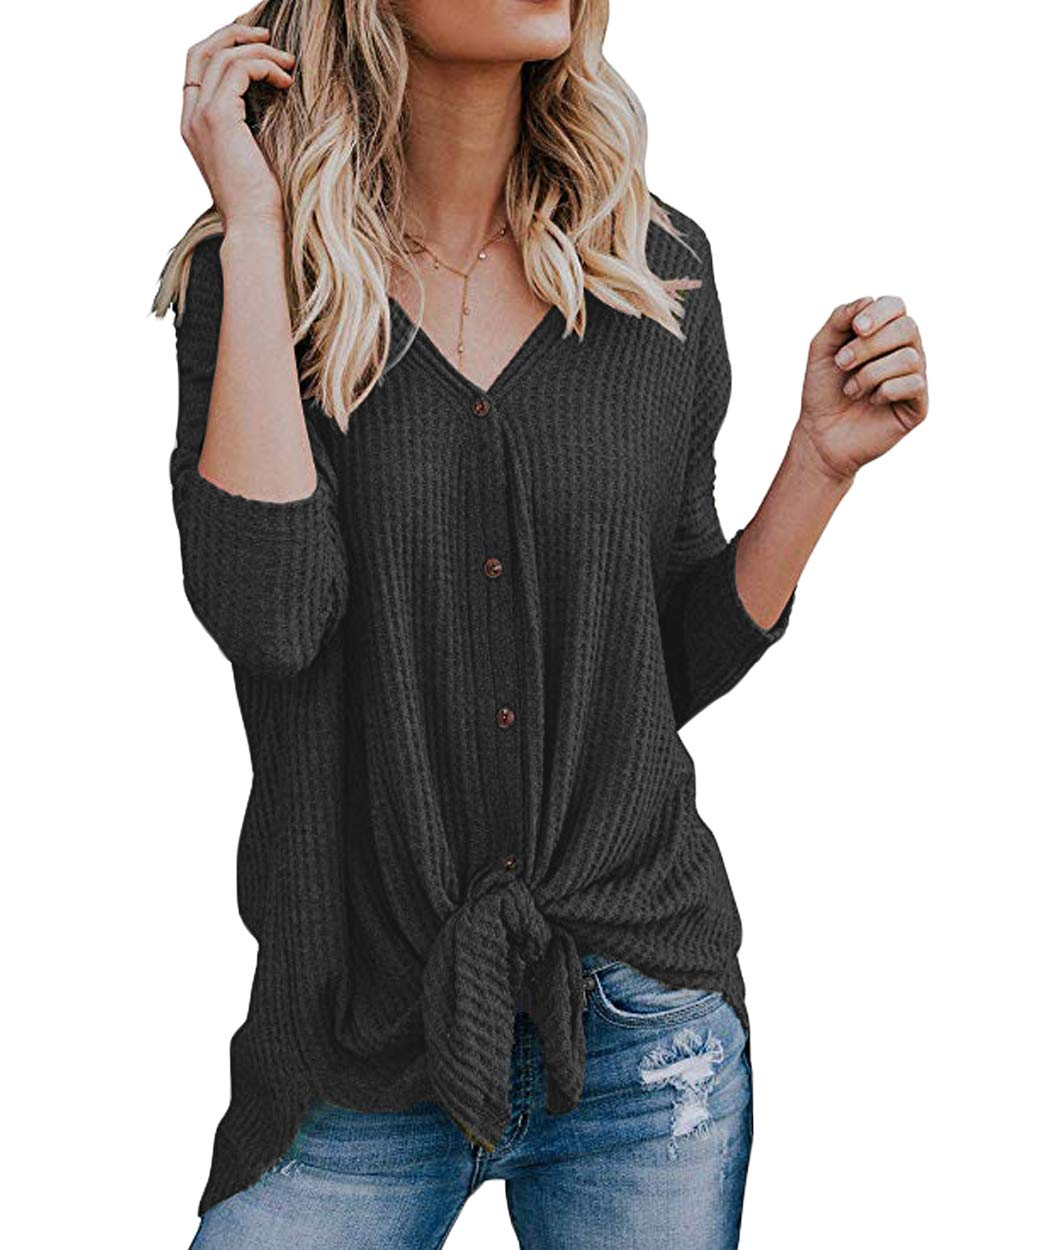 Eanklosco Tie Knot Tops Womens Waffle Knit V Neck Blouse Button Down Long Sleeve Henley Shirt (Gray, L)